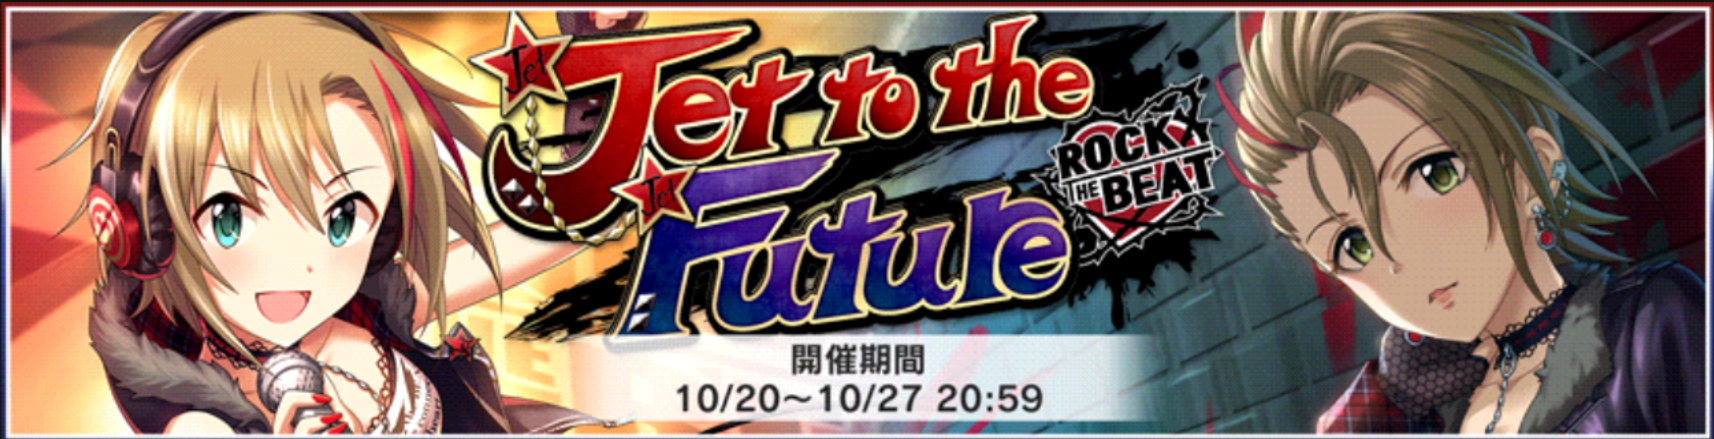 [데레스테]Jet to the future